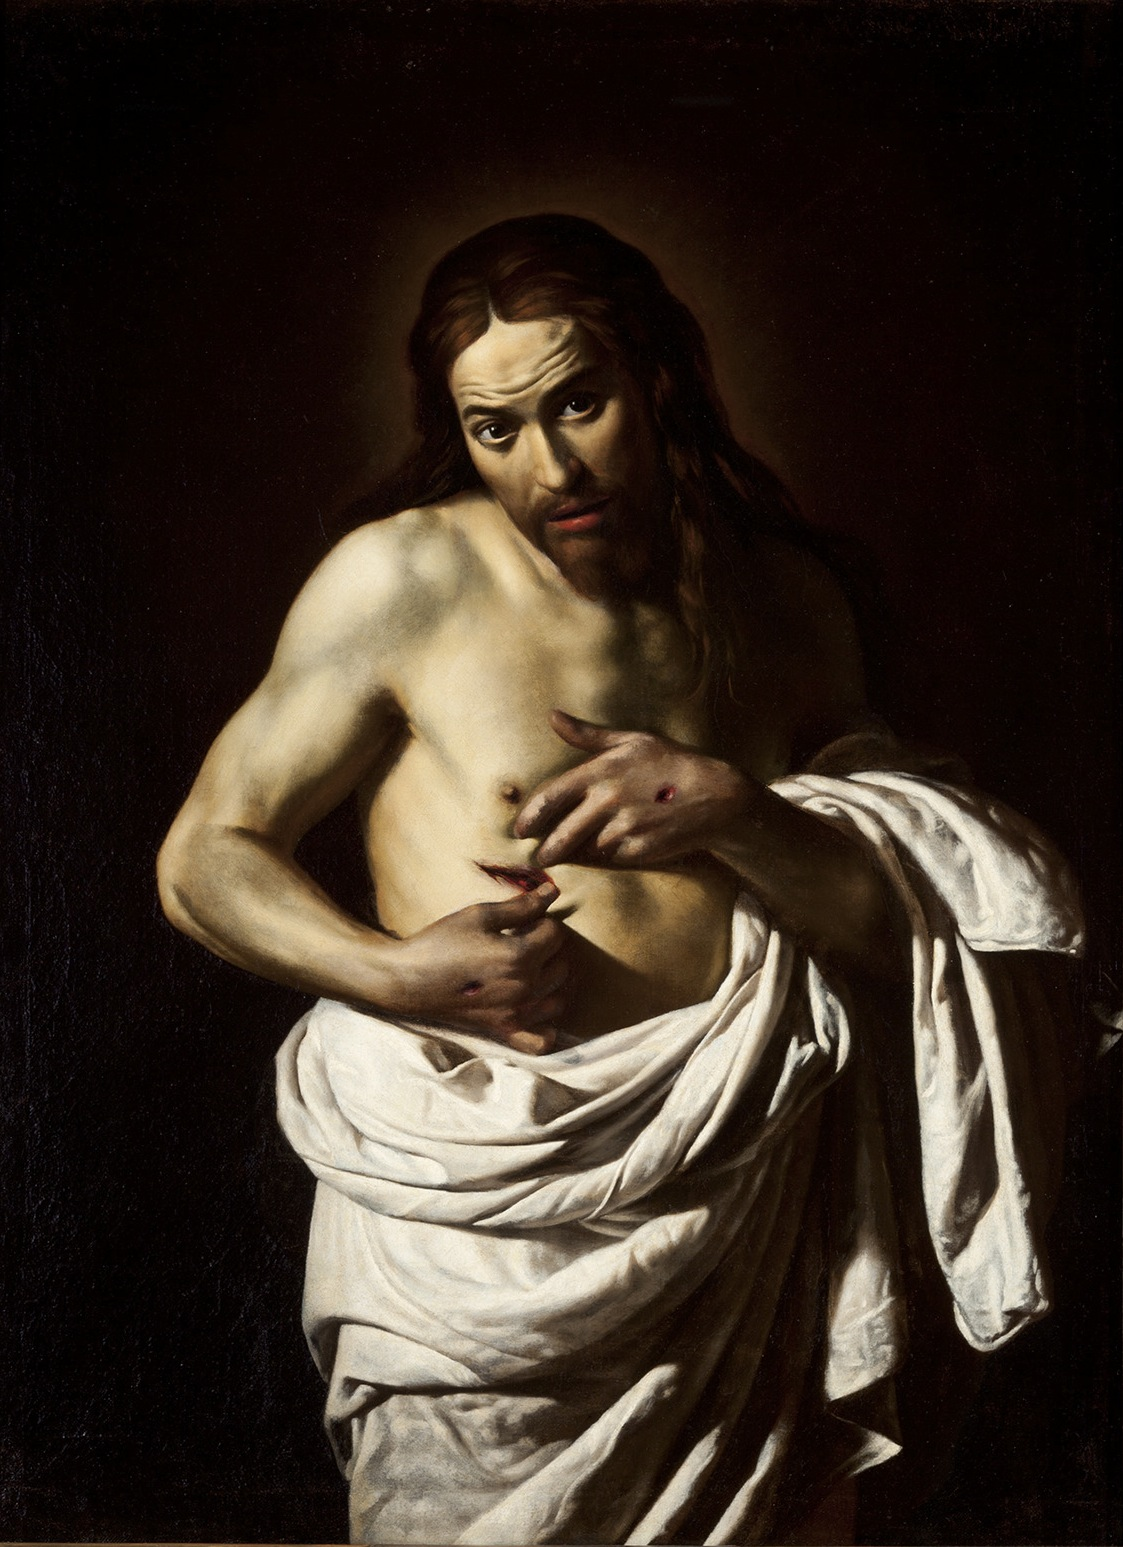 Giovanni Antonio Galli, Christ Displaying His Wounds,  c.1630, Perth Museum and Art Gallery  https://theidlewoman.net/2016/11/27/beyond-caravaggio/christ-displaying-his-wounds-about-1610-20/